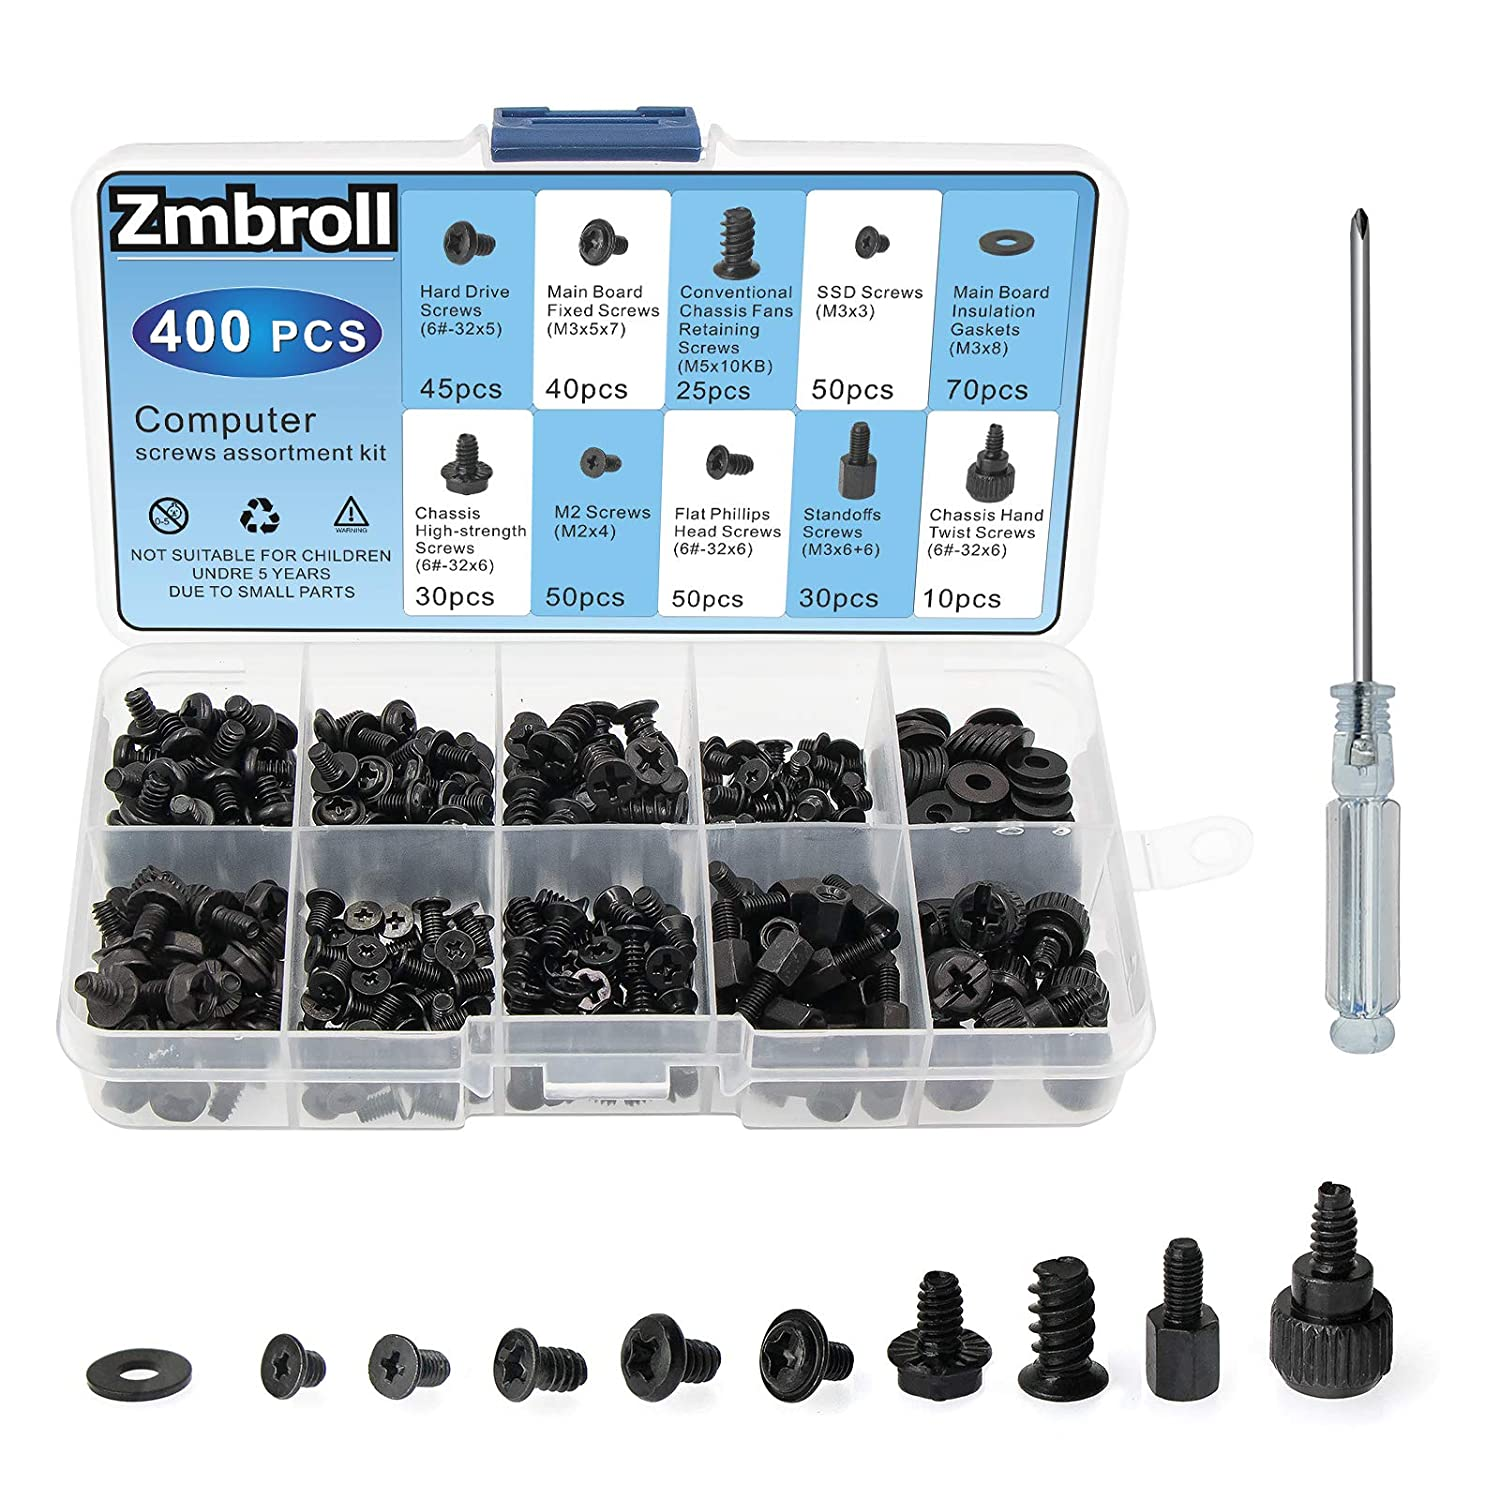 Zmbroll 400Pcs Computer Screws Standoffs Kit SSD Screw for Universal Motherboard PC Computer Case Screw Fan CD-ROM with Screwdriver